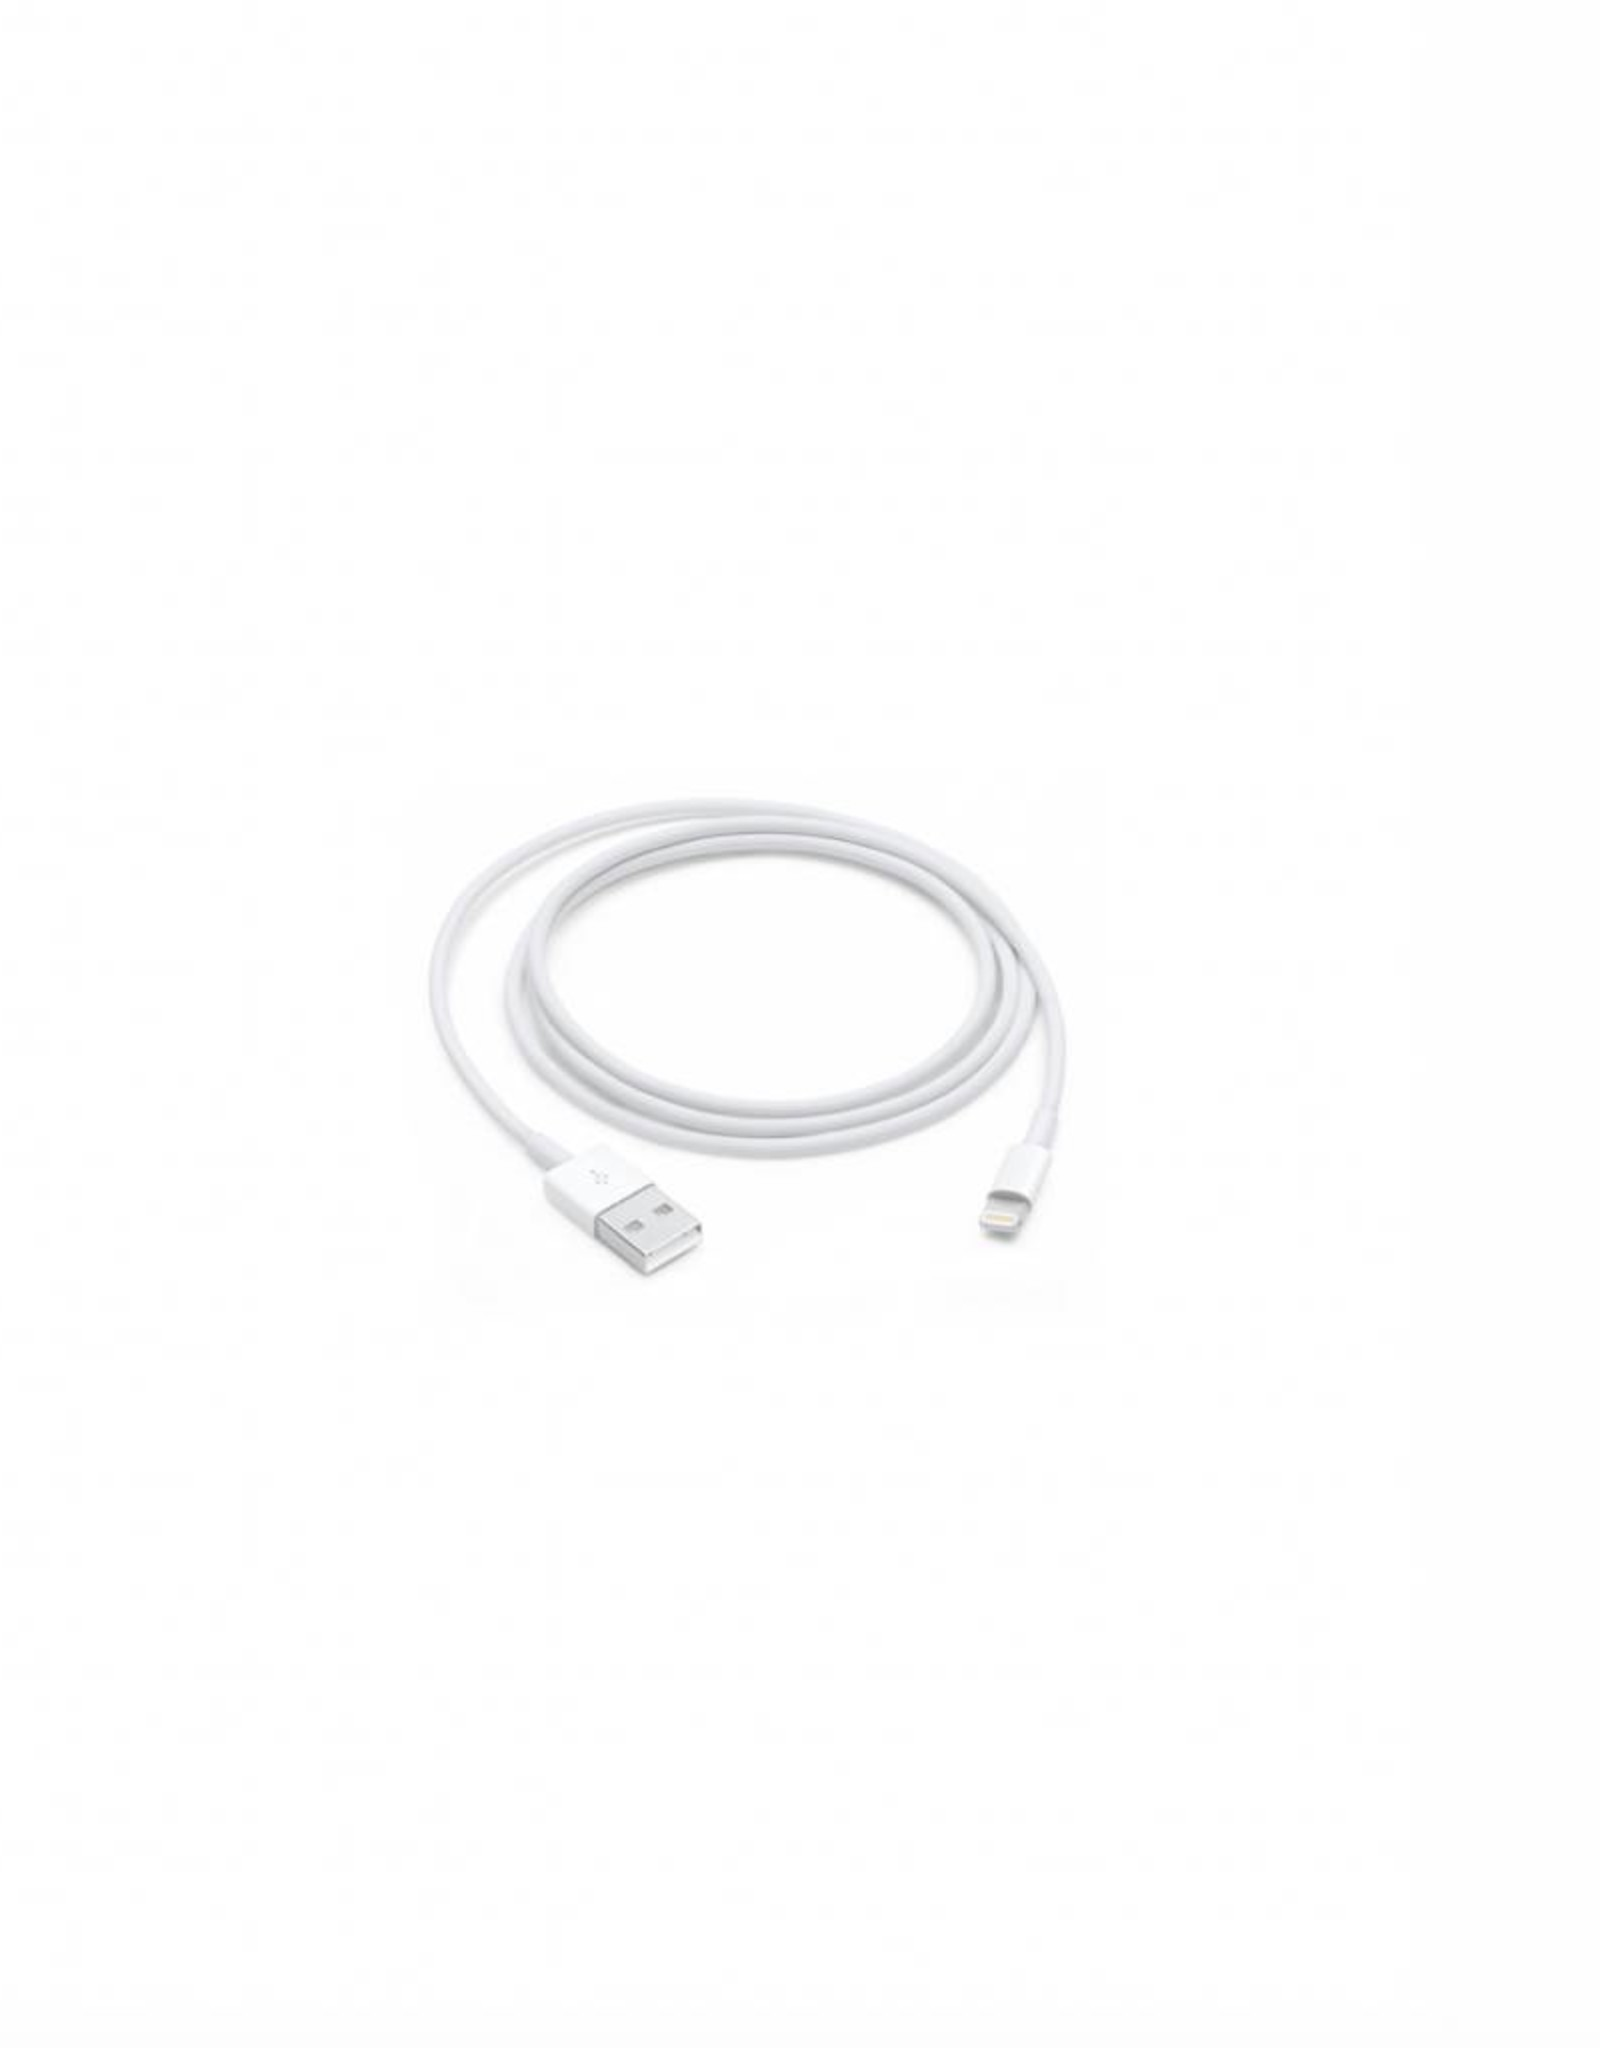 Apple APPLE LIGHTNING TO USB CABLE (1 METER)